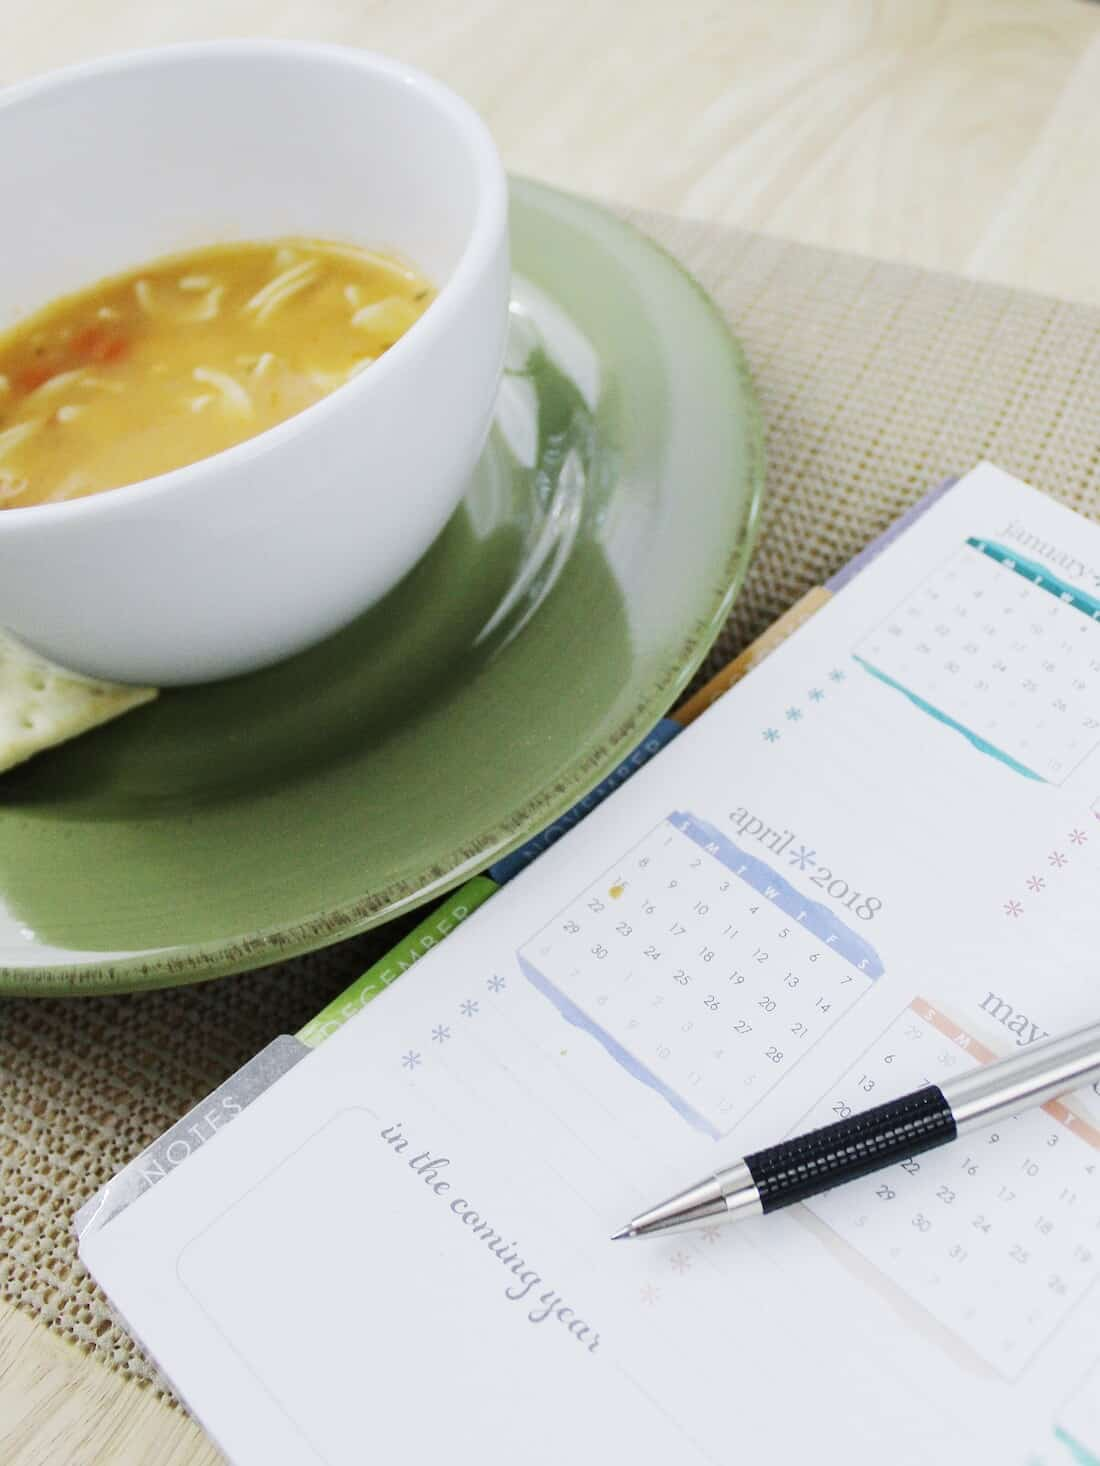 Bowl of soup and planner on kitchen table.